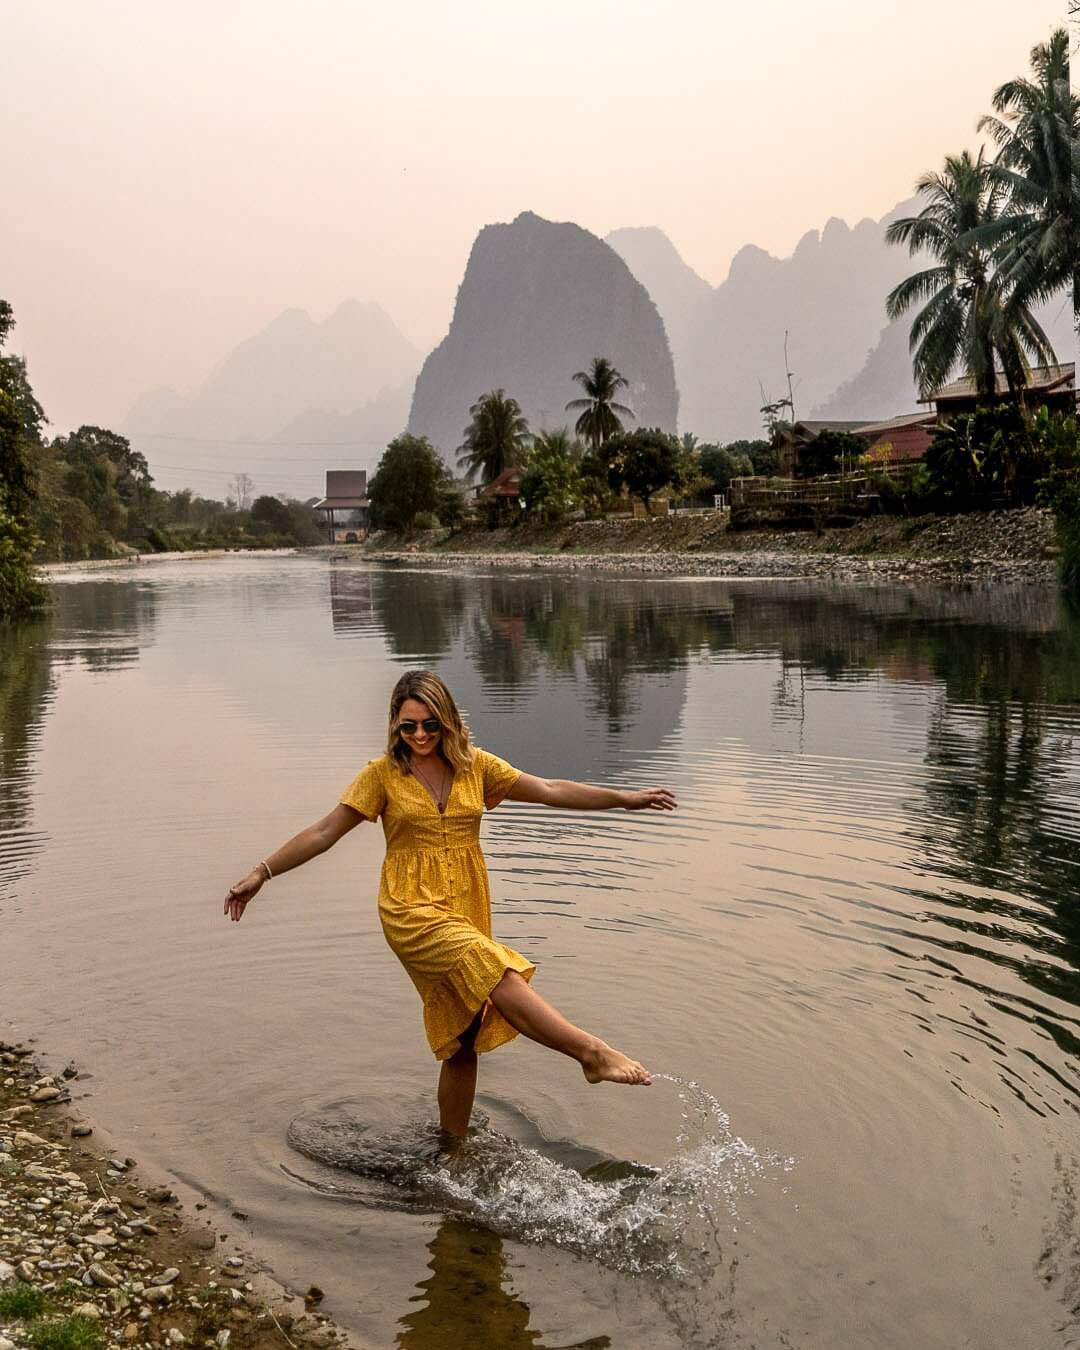 Girl in the water at the Nam Song river in Vang Vieng, Laos